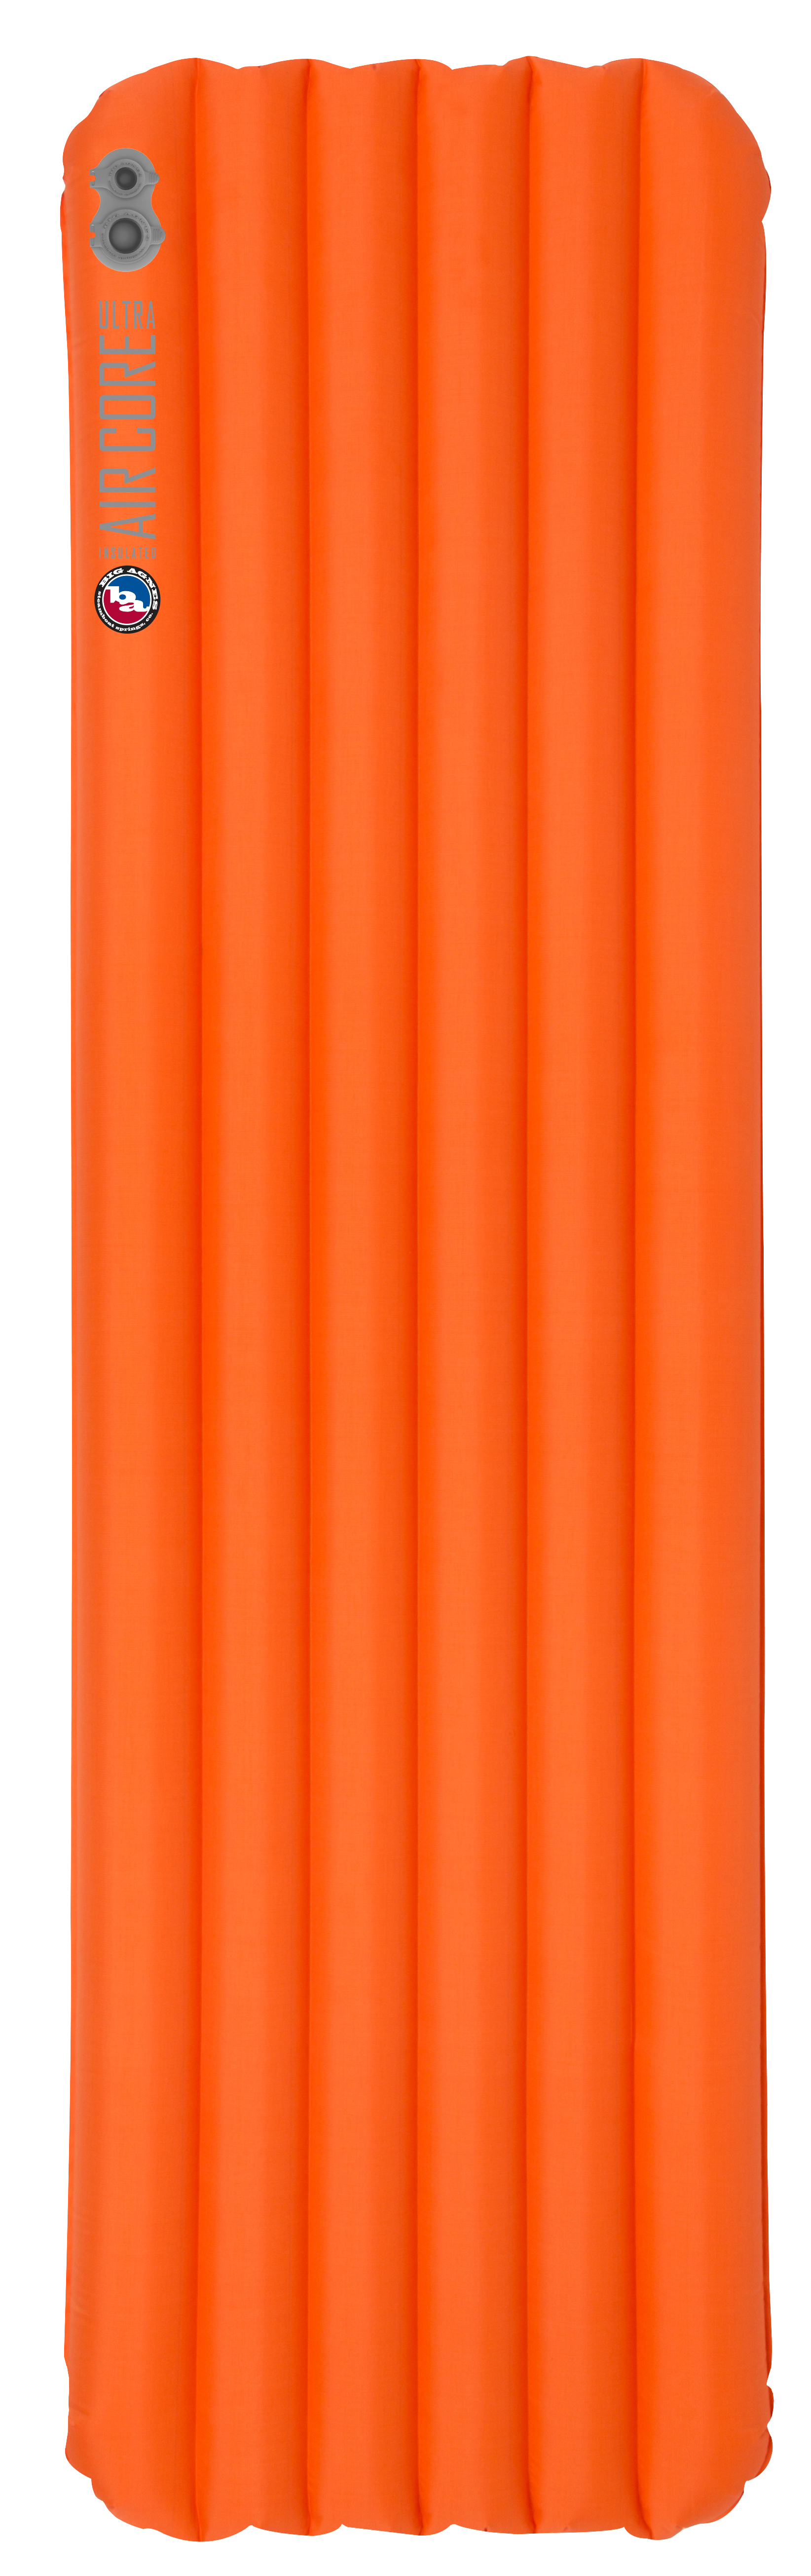 Big Agnes Insulated Air Core Ultra Sleeping Pad - Unisex 2452c9f4d74a